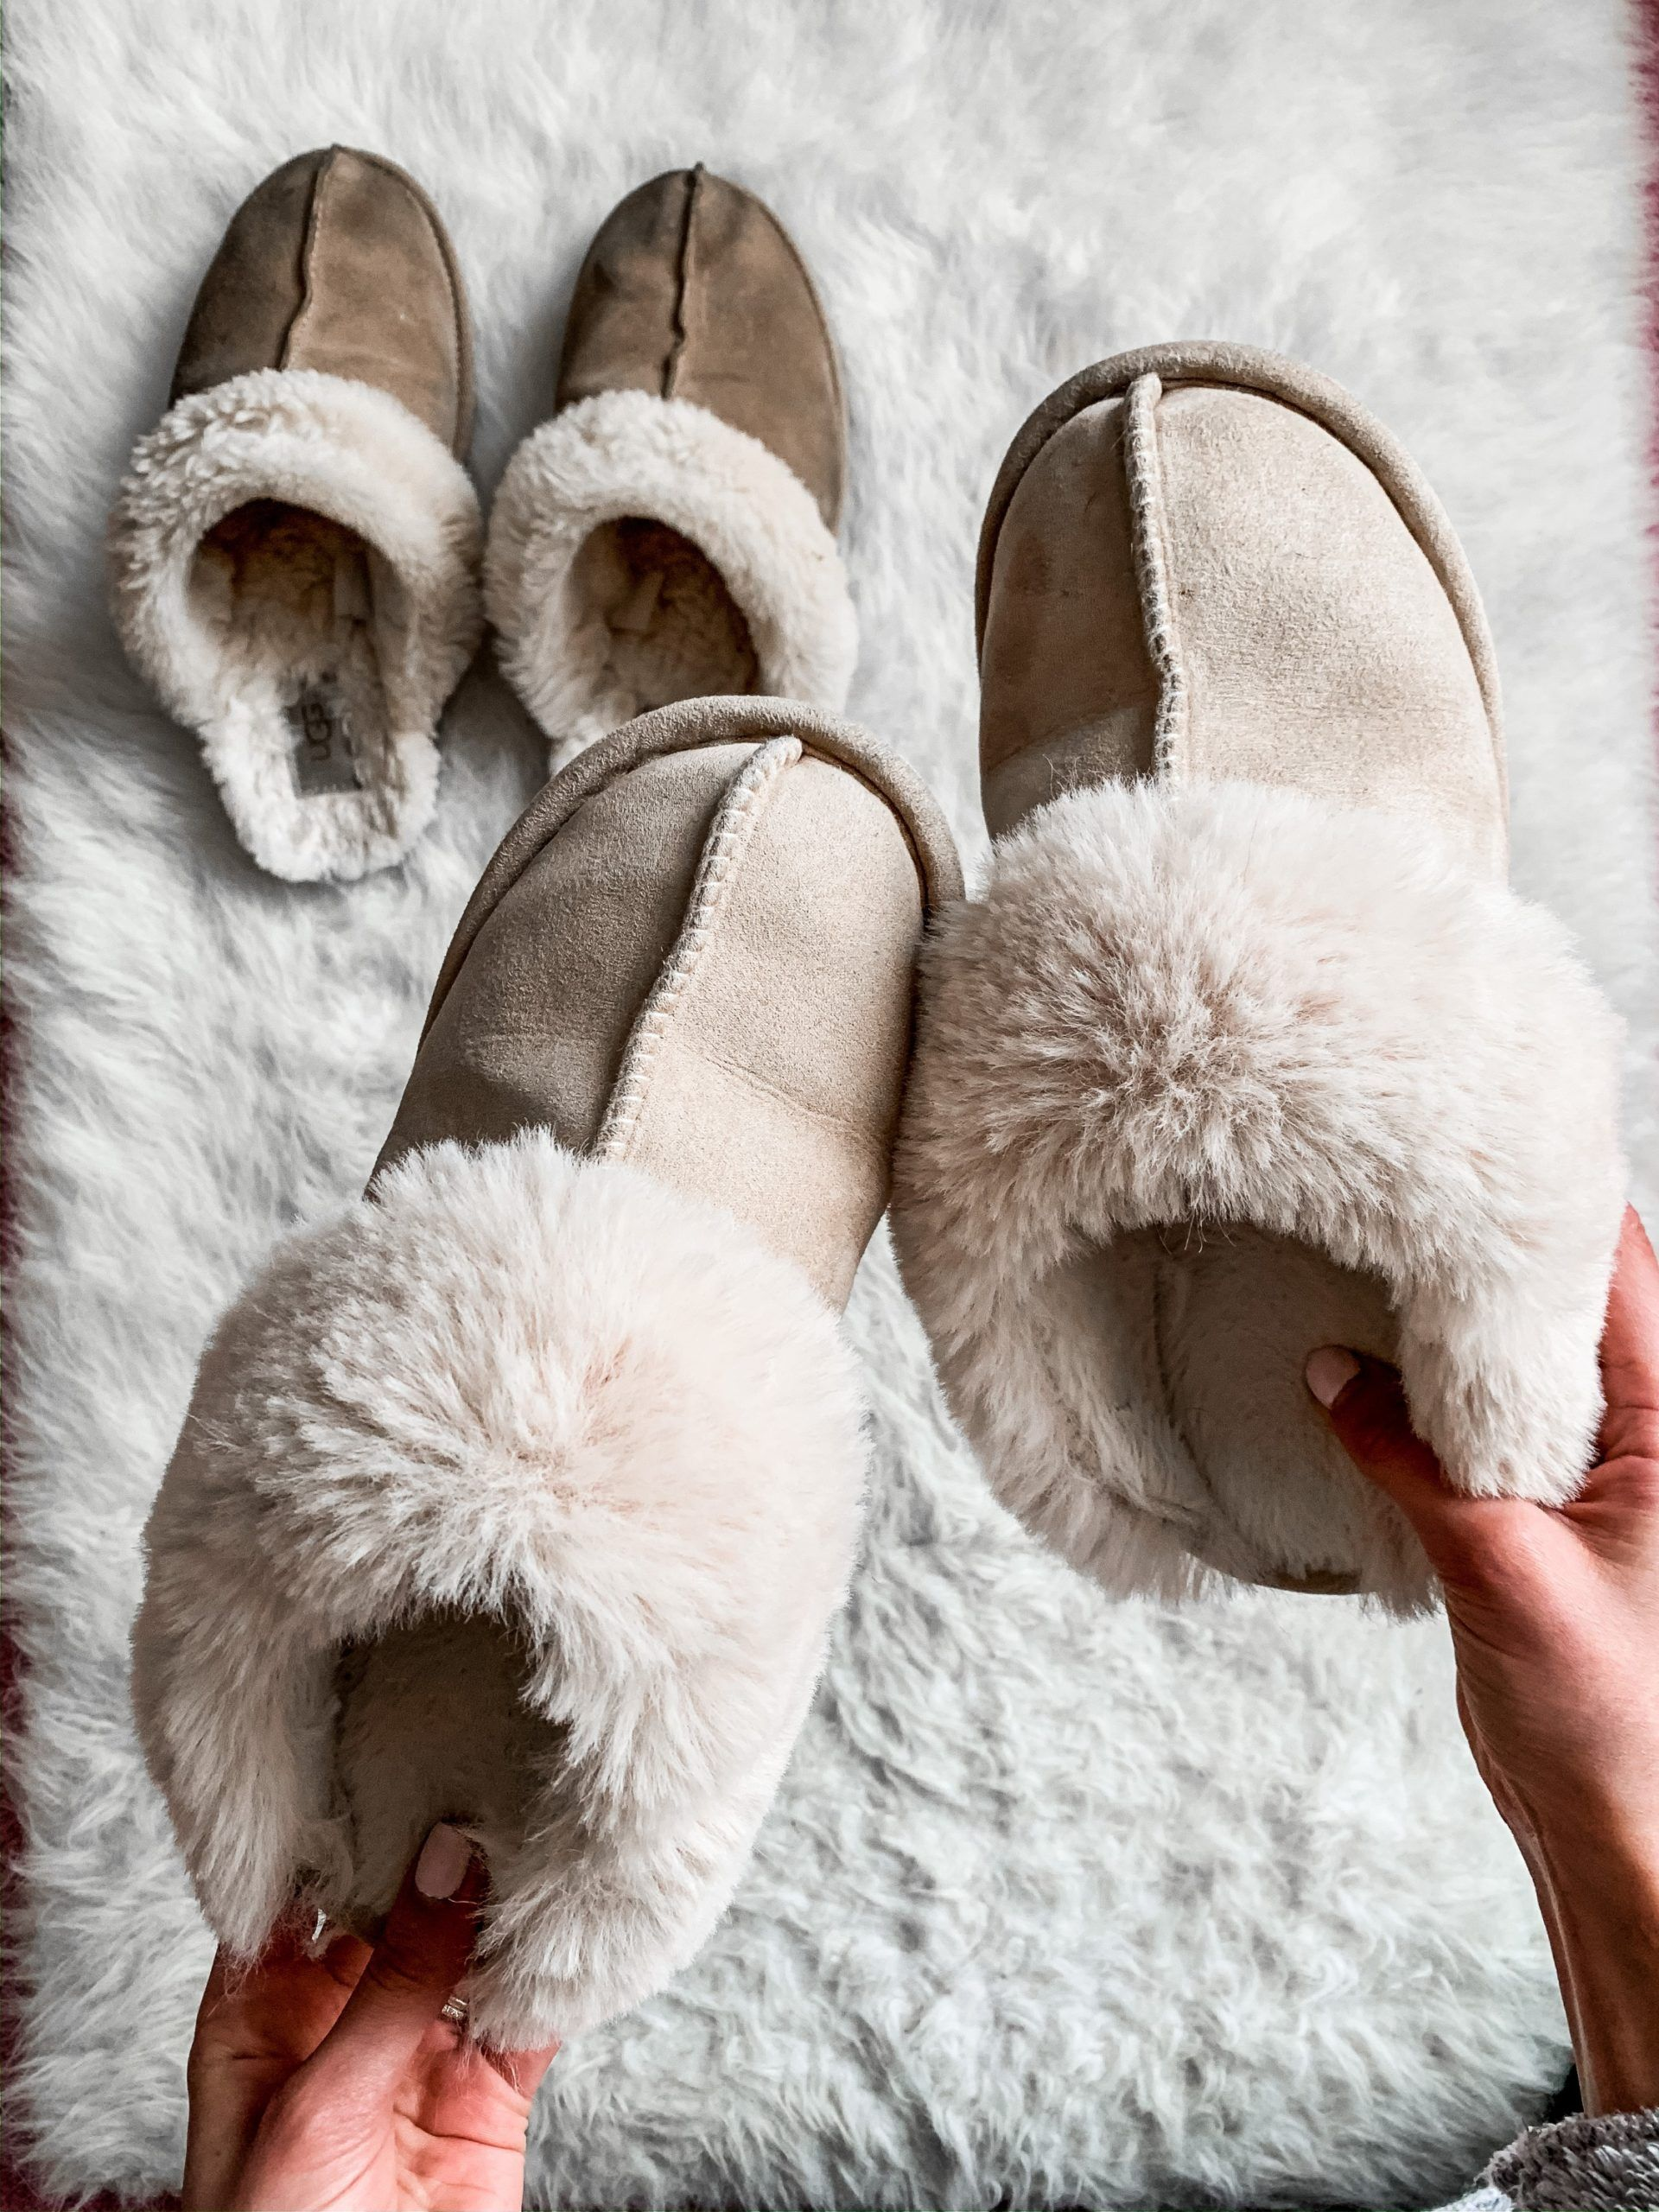 Duped Ugg Slippers 20 Amazon Dupes For The 85 Real Uggs Ugg Slippers Slippers Real Uggs